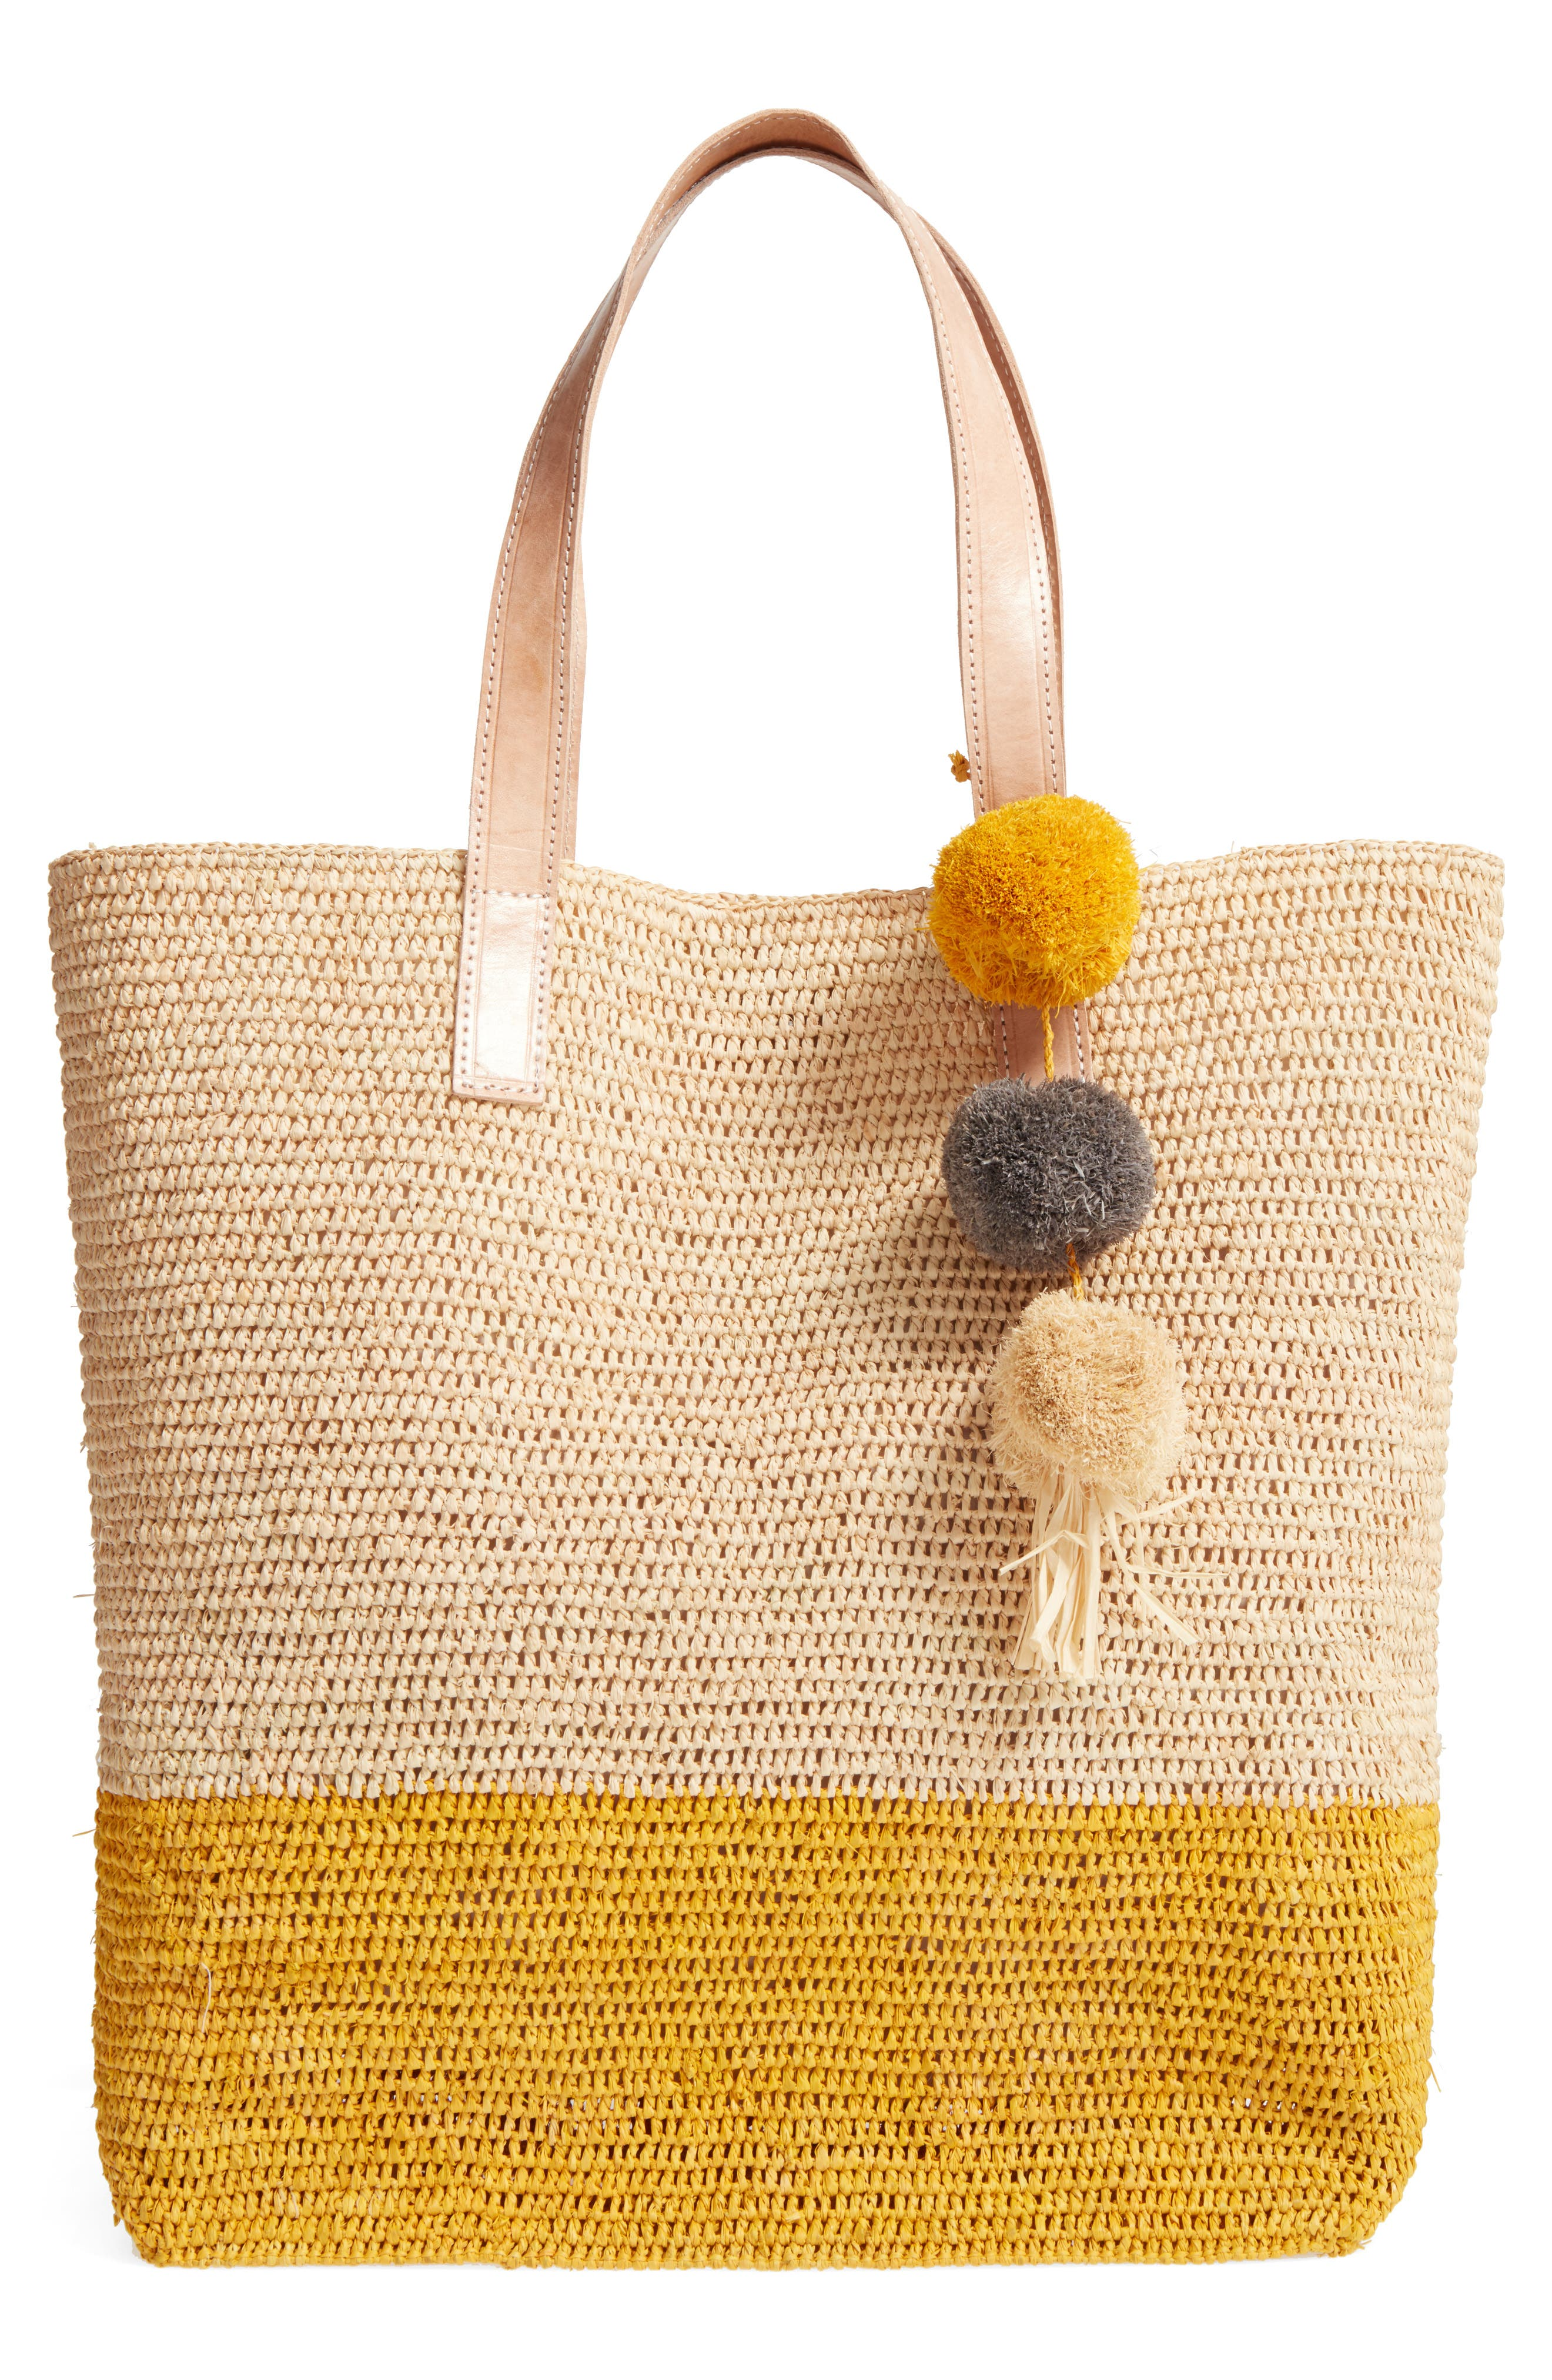 Alternate Image 1 Selected - Mar y Sol Montauk Woven Tote with Pom Charms